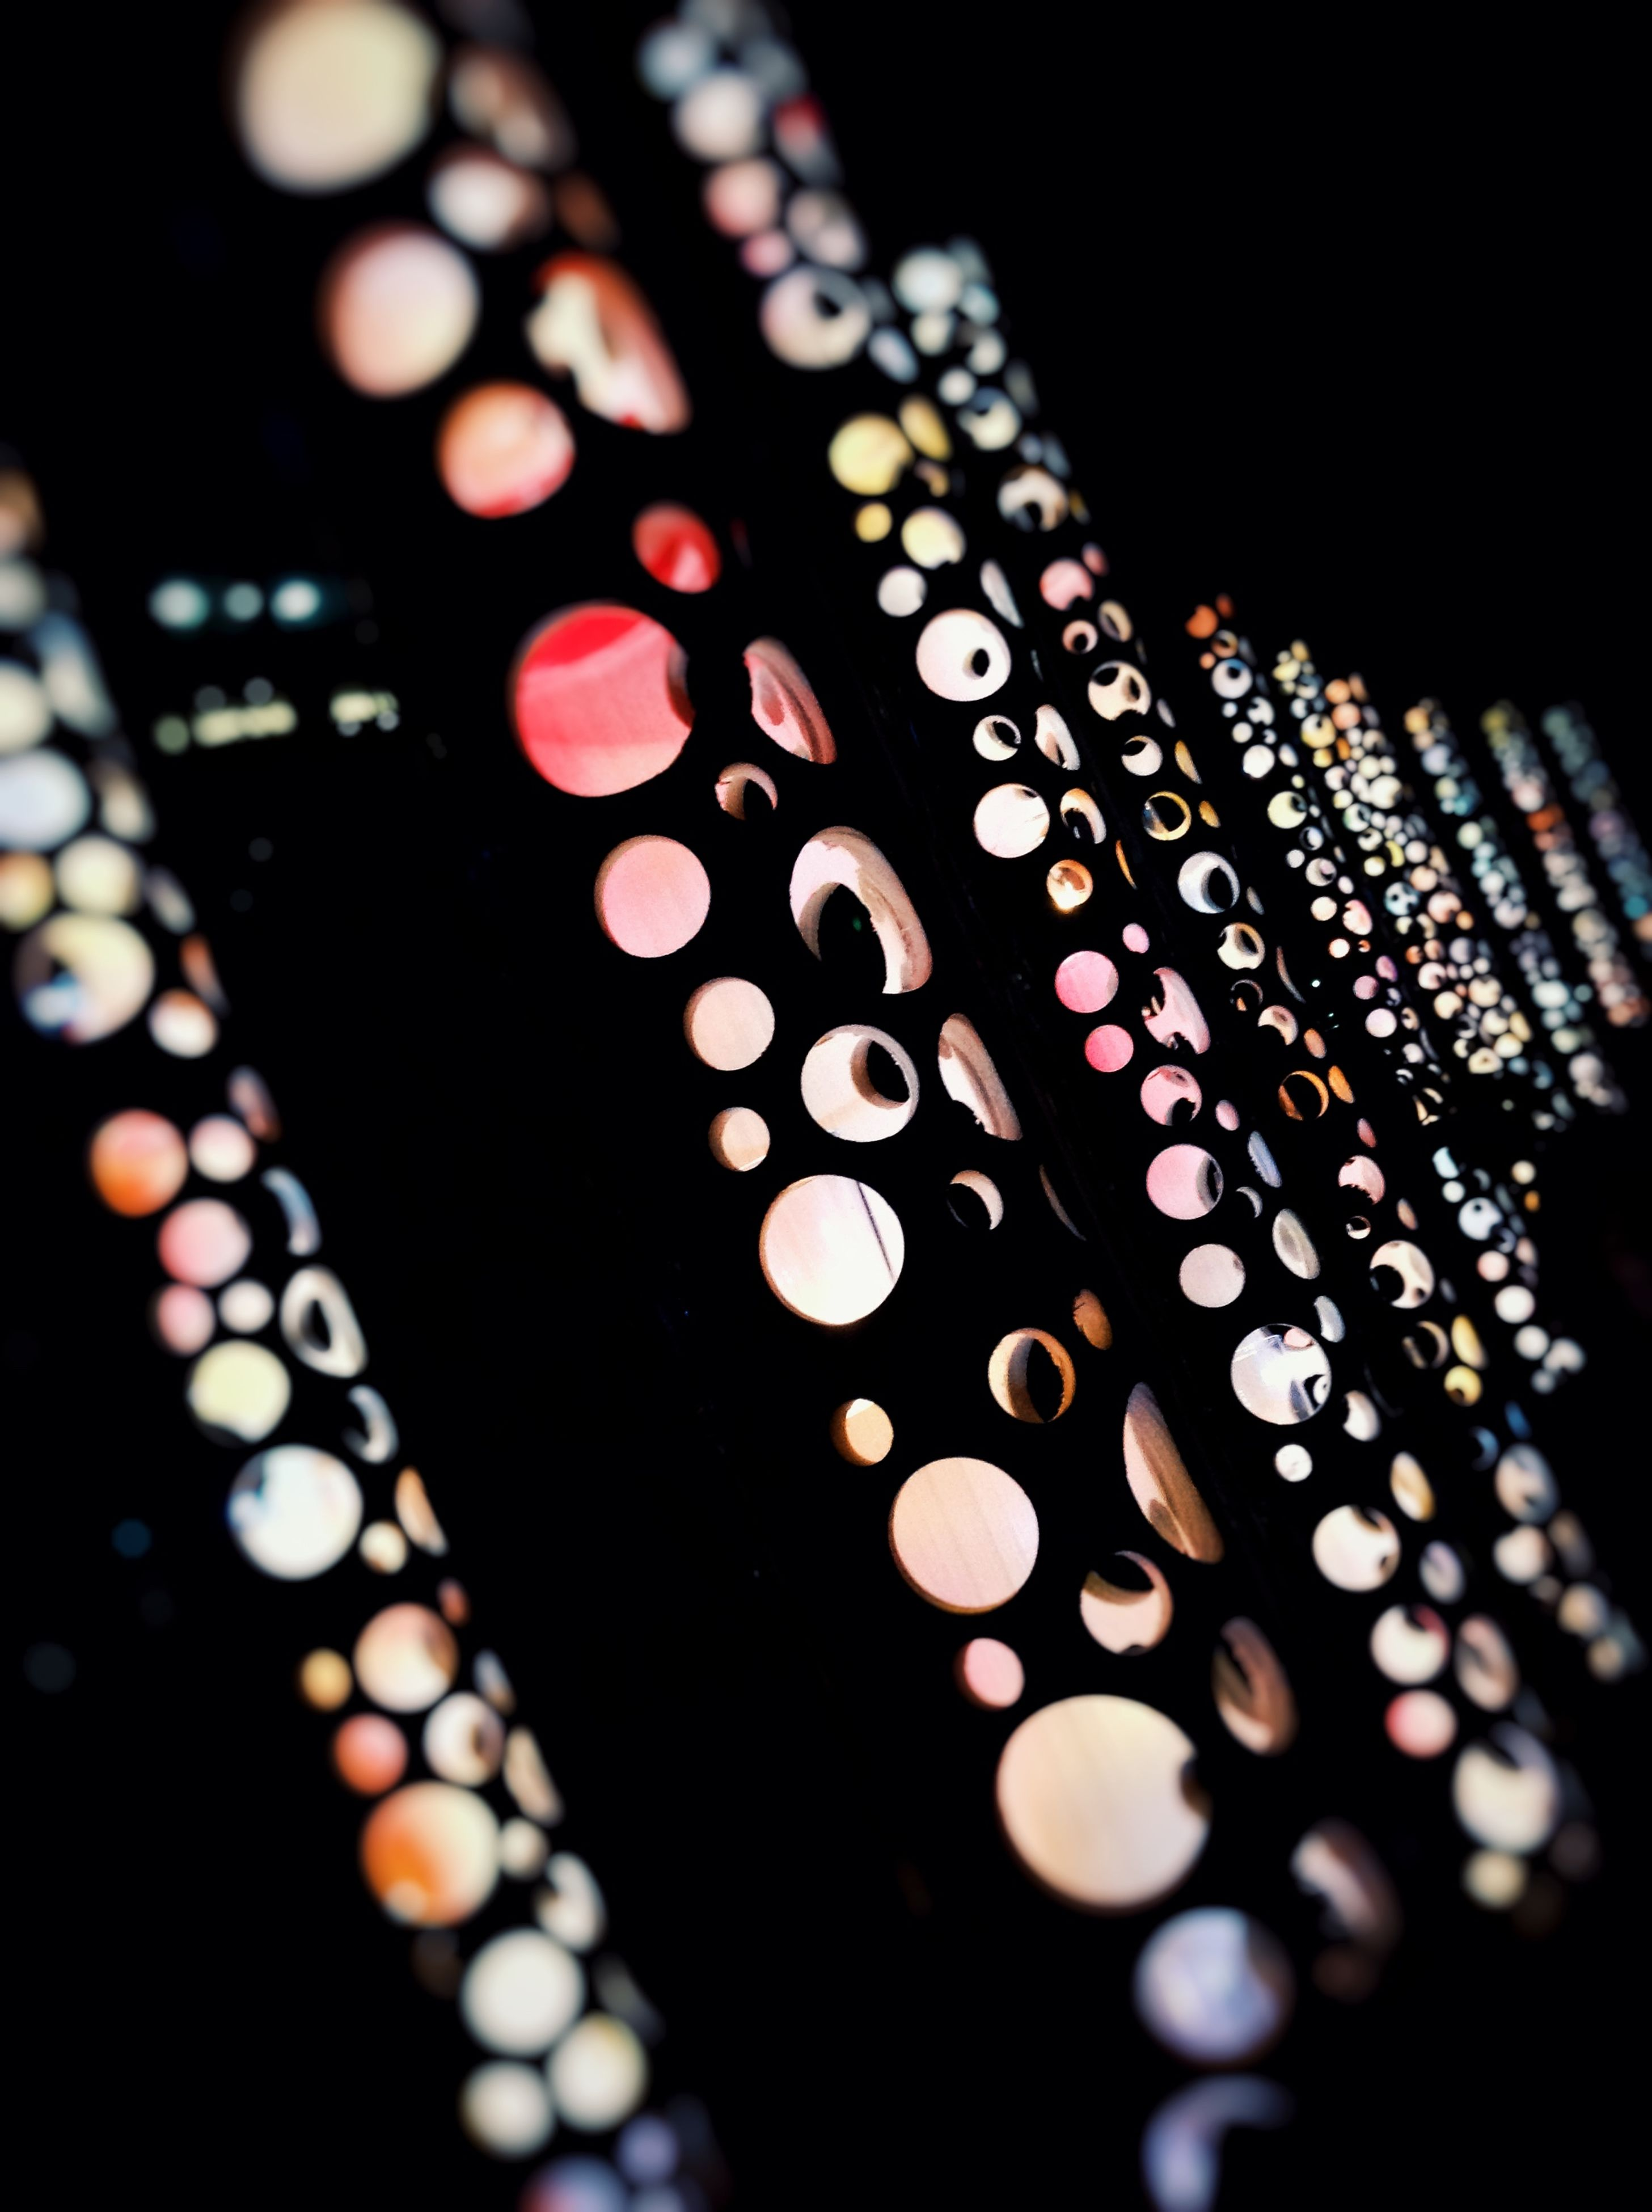 indoors, close-up, illuminated, pattern, selective focus, night, design, still life, decoration, in a row, no people, focus on foreground, arts culture and entertainment, lighting equipment, part of, large group of objects, glowing, art and craft, light - natural phenomenon, black background